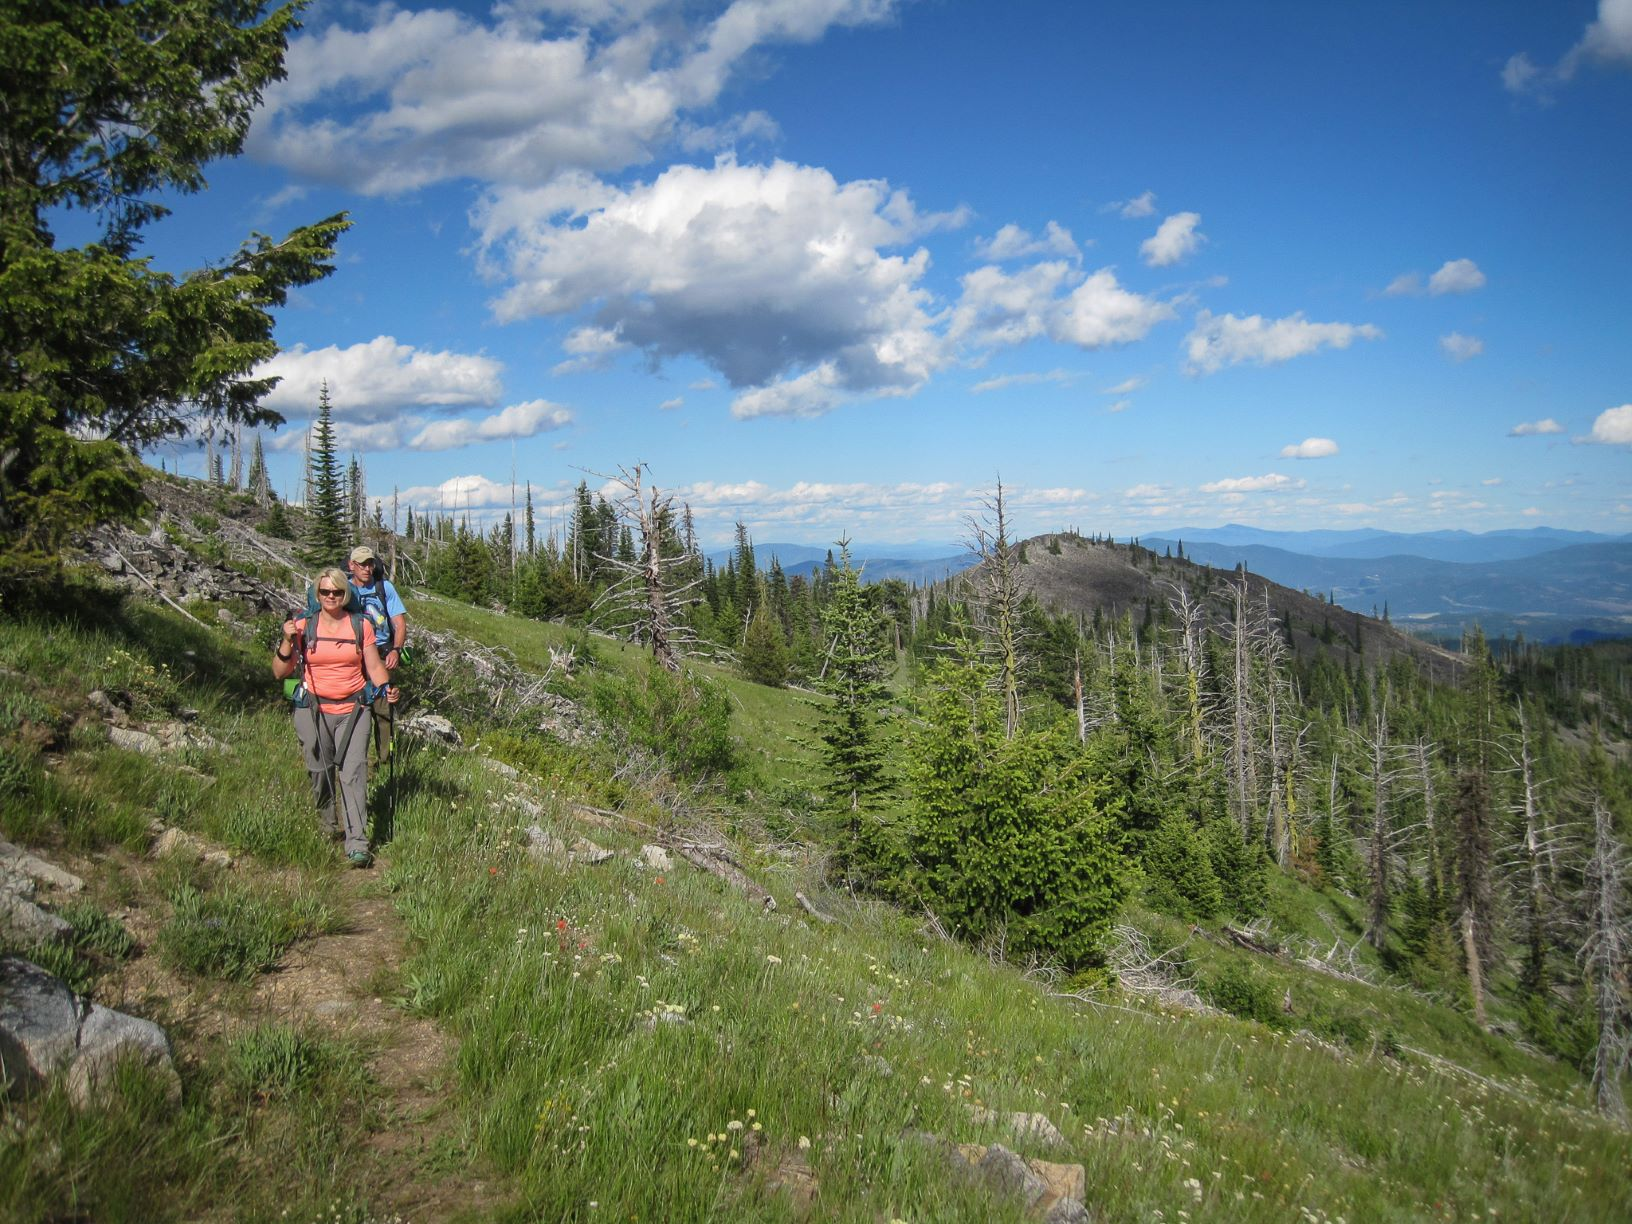 Two hikers on a trail in the Kettle Crest Range -- wearing backpacks and using trekking poles. Forested mountain side with peaks in the distance. Sunny, blue sky with clouds.